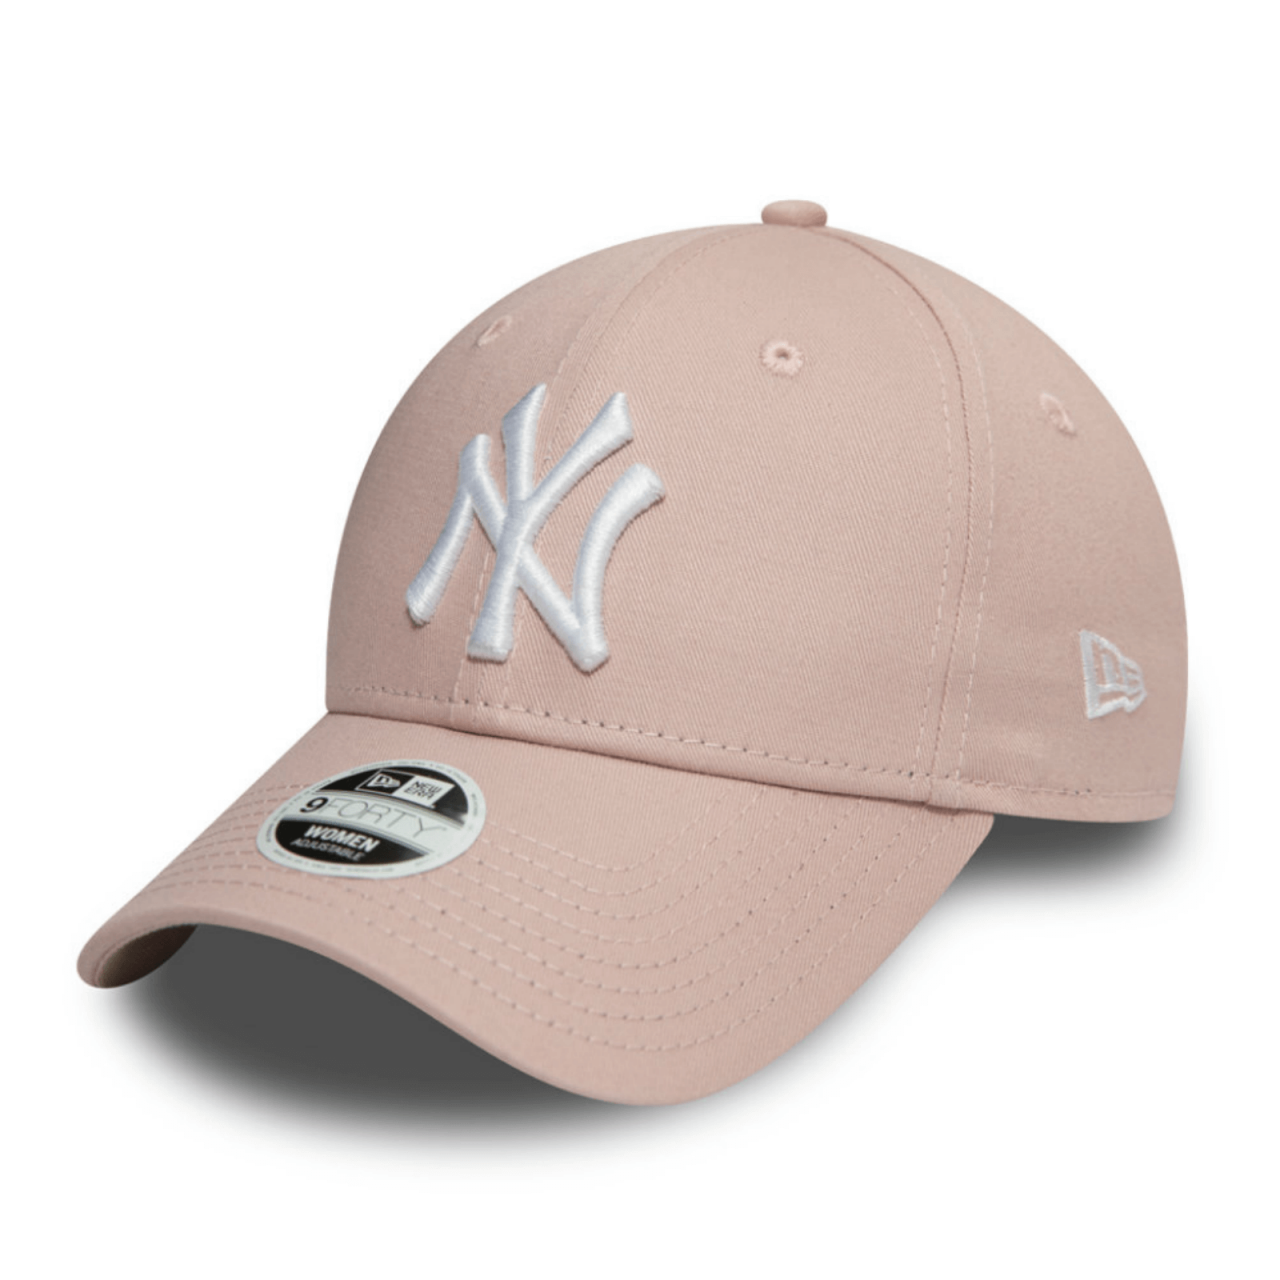 KIDS 9FORTY LEAGUE ESSENTIAL NEW YORK YANKEES BABY PINK CAP